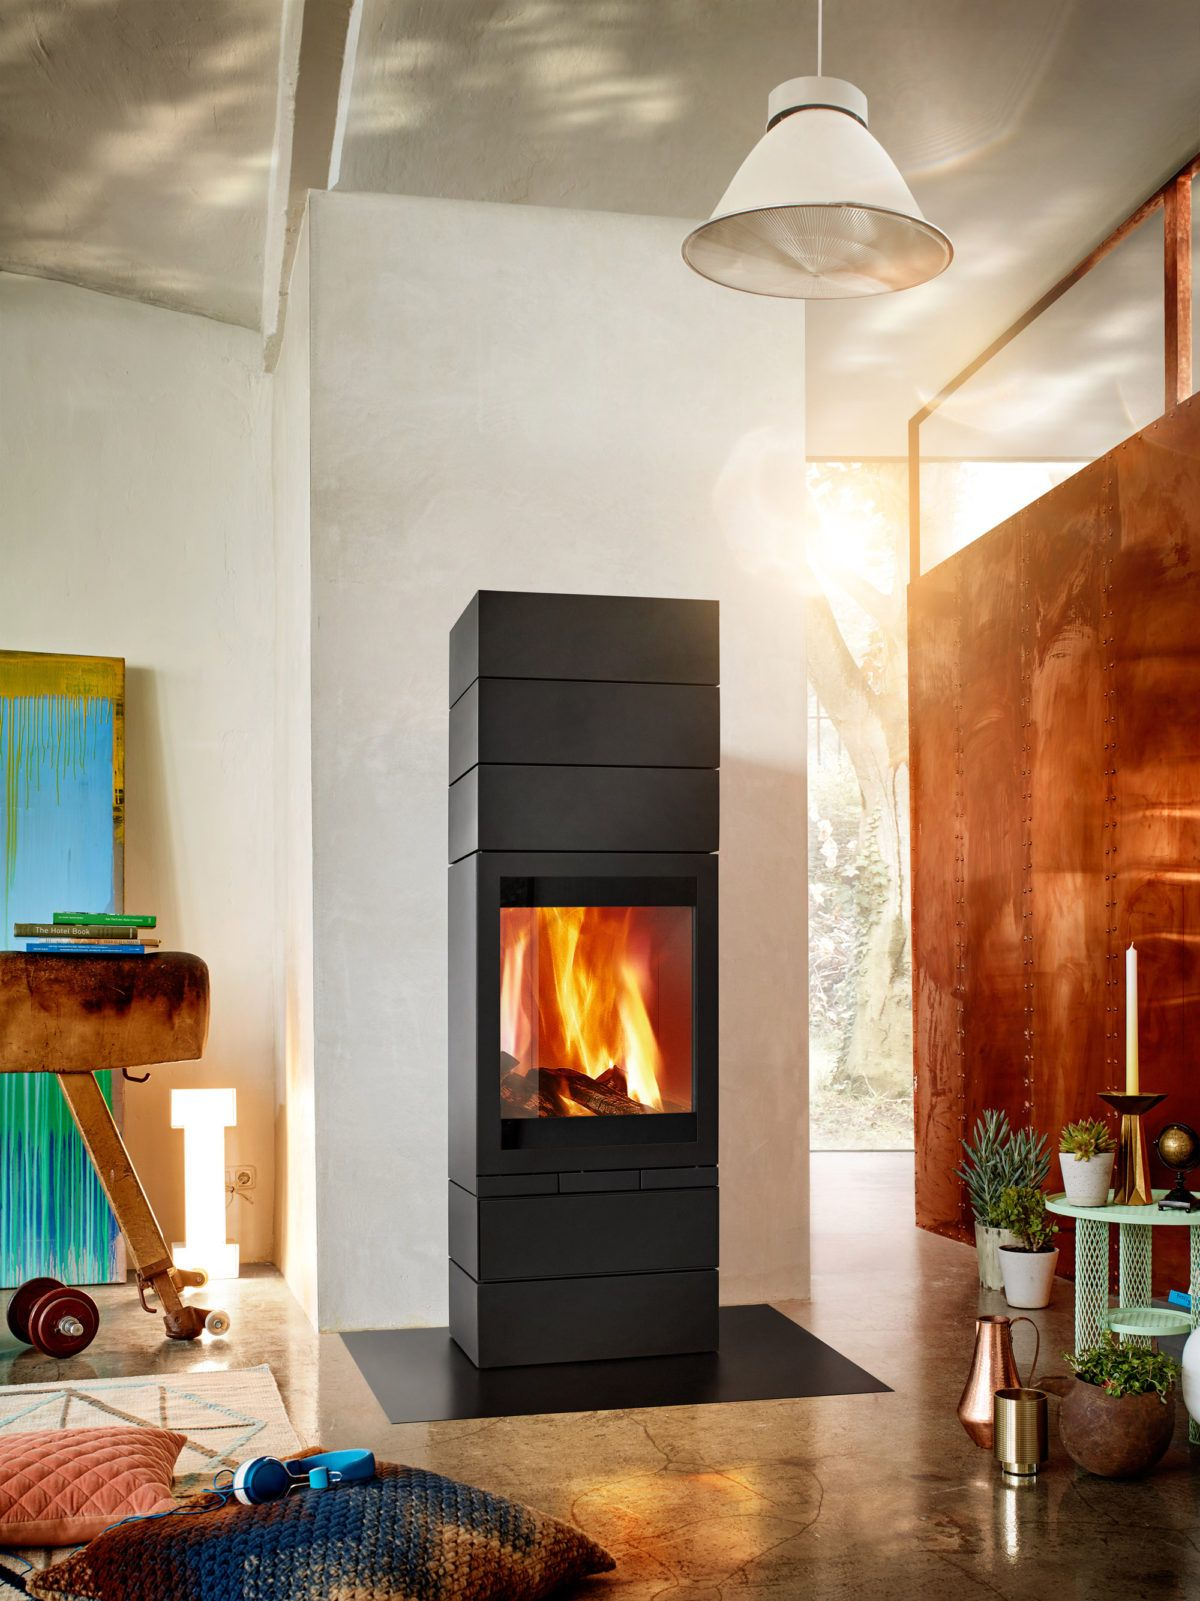 Skantherm Kaminofen Zubehör Elements 600 Building On Existing Footprint In 2019 Stove